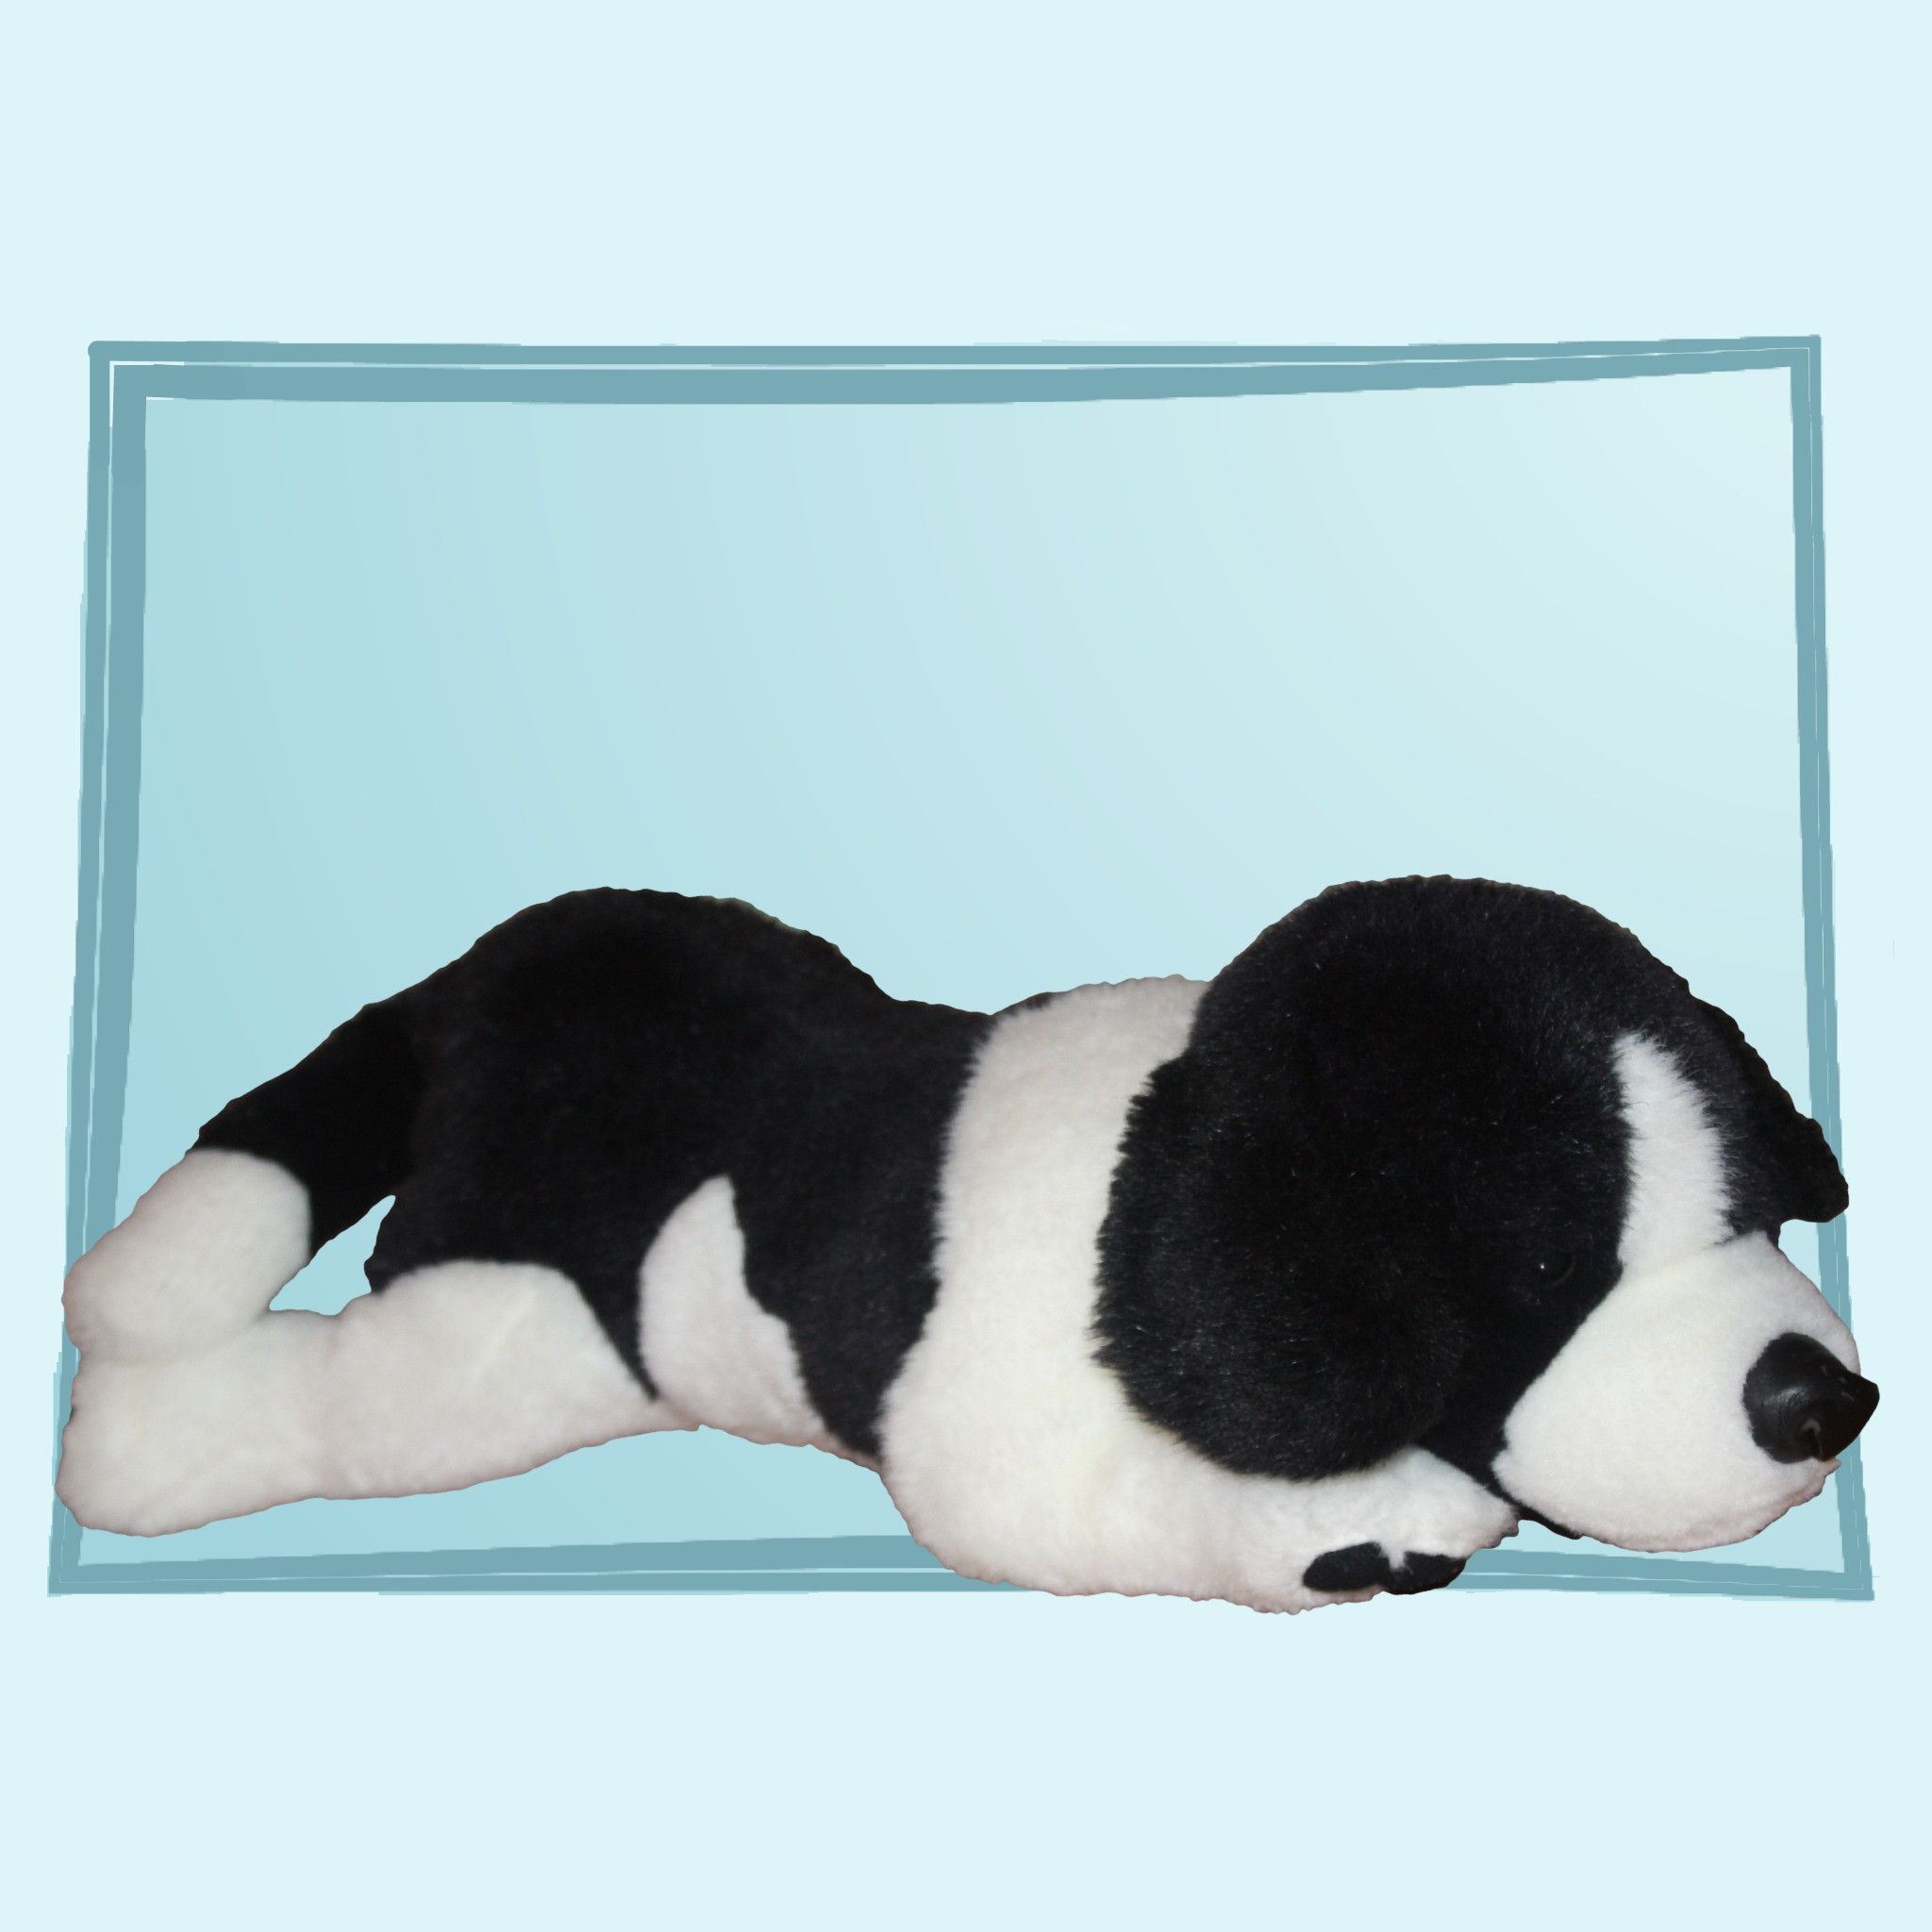 1989 Commonweath for Target Black & White Puppy Dog